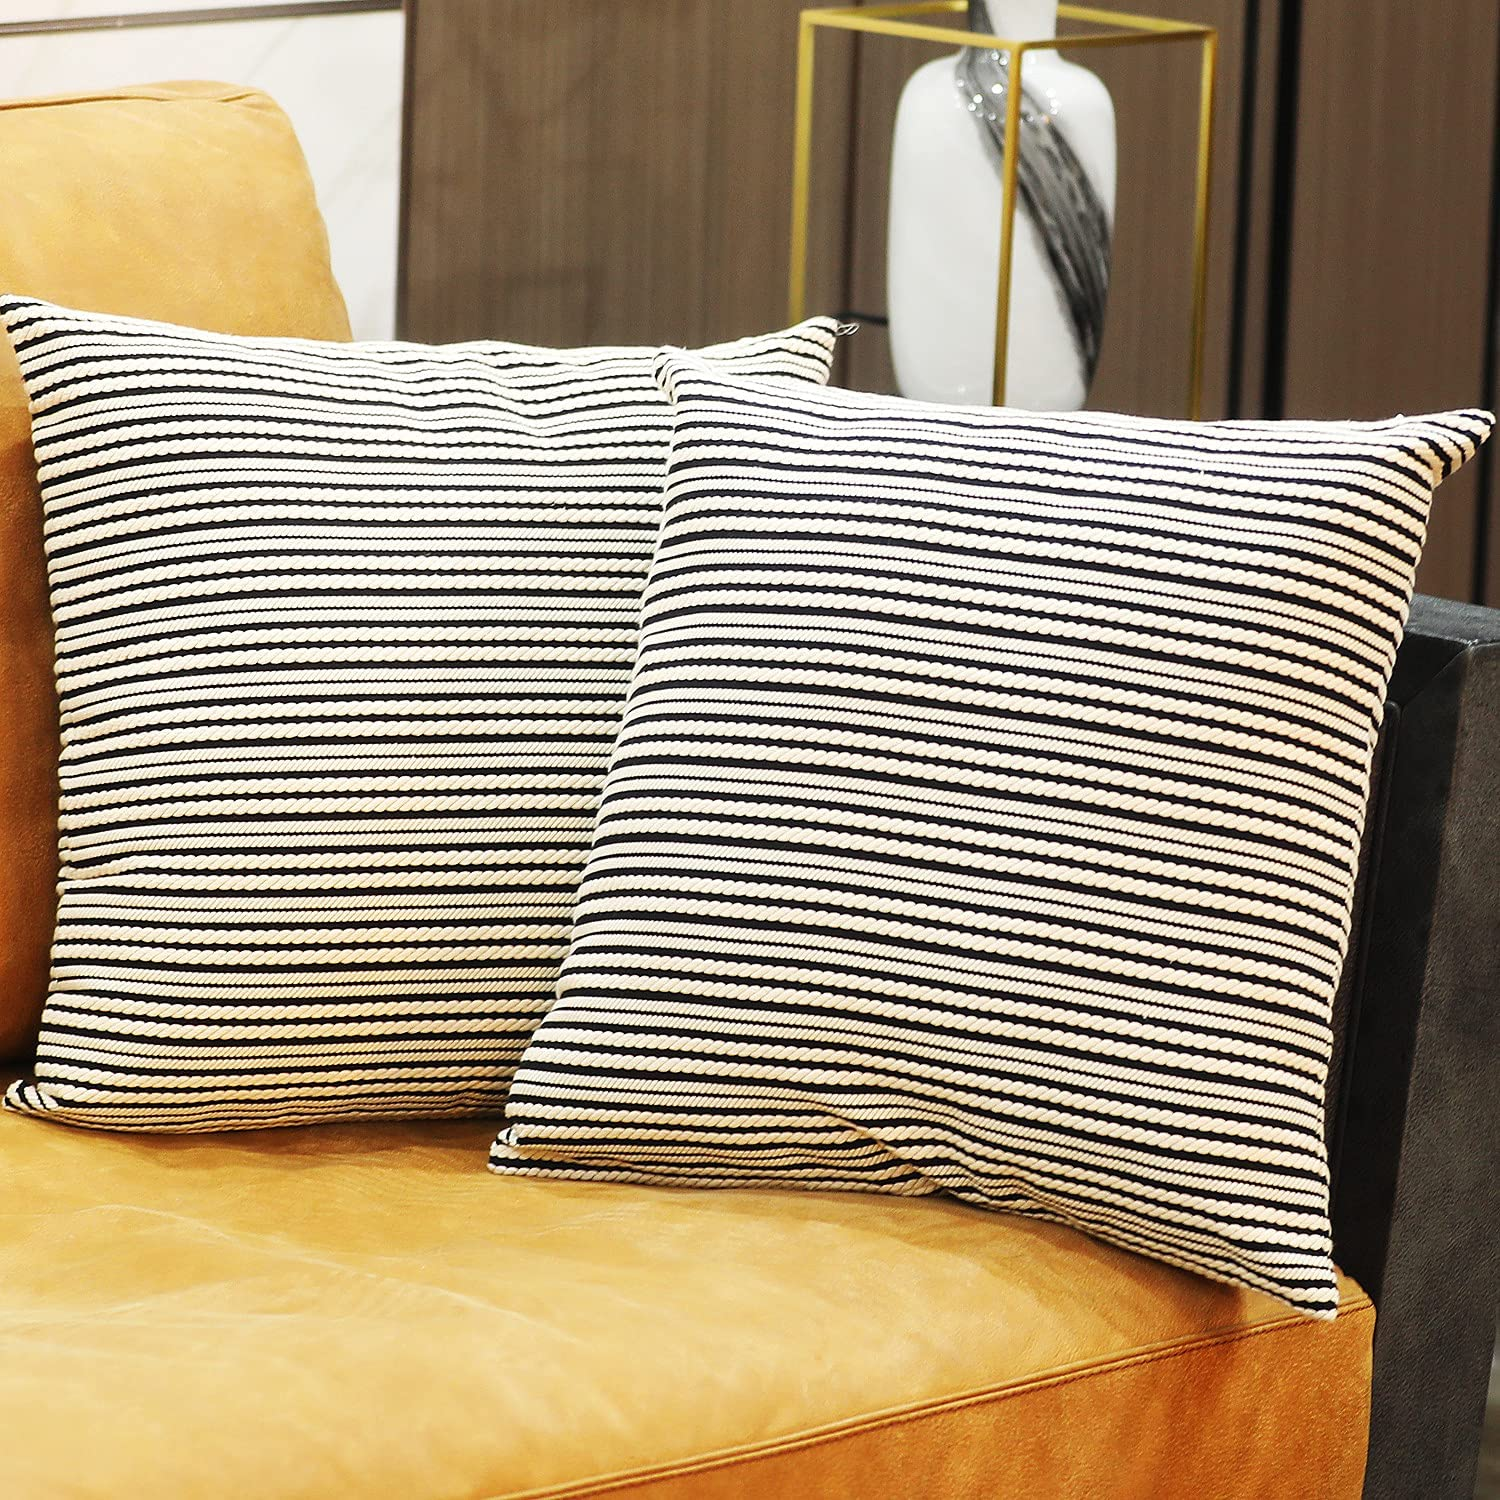 OFFicial mail order Animer and price revision ChuloPony Decorative Throw Pillow Covers Black Moder Stripes 3D